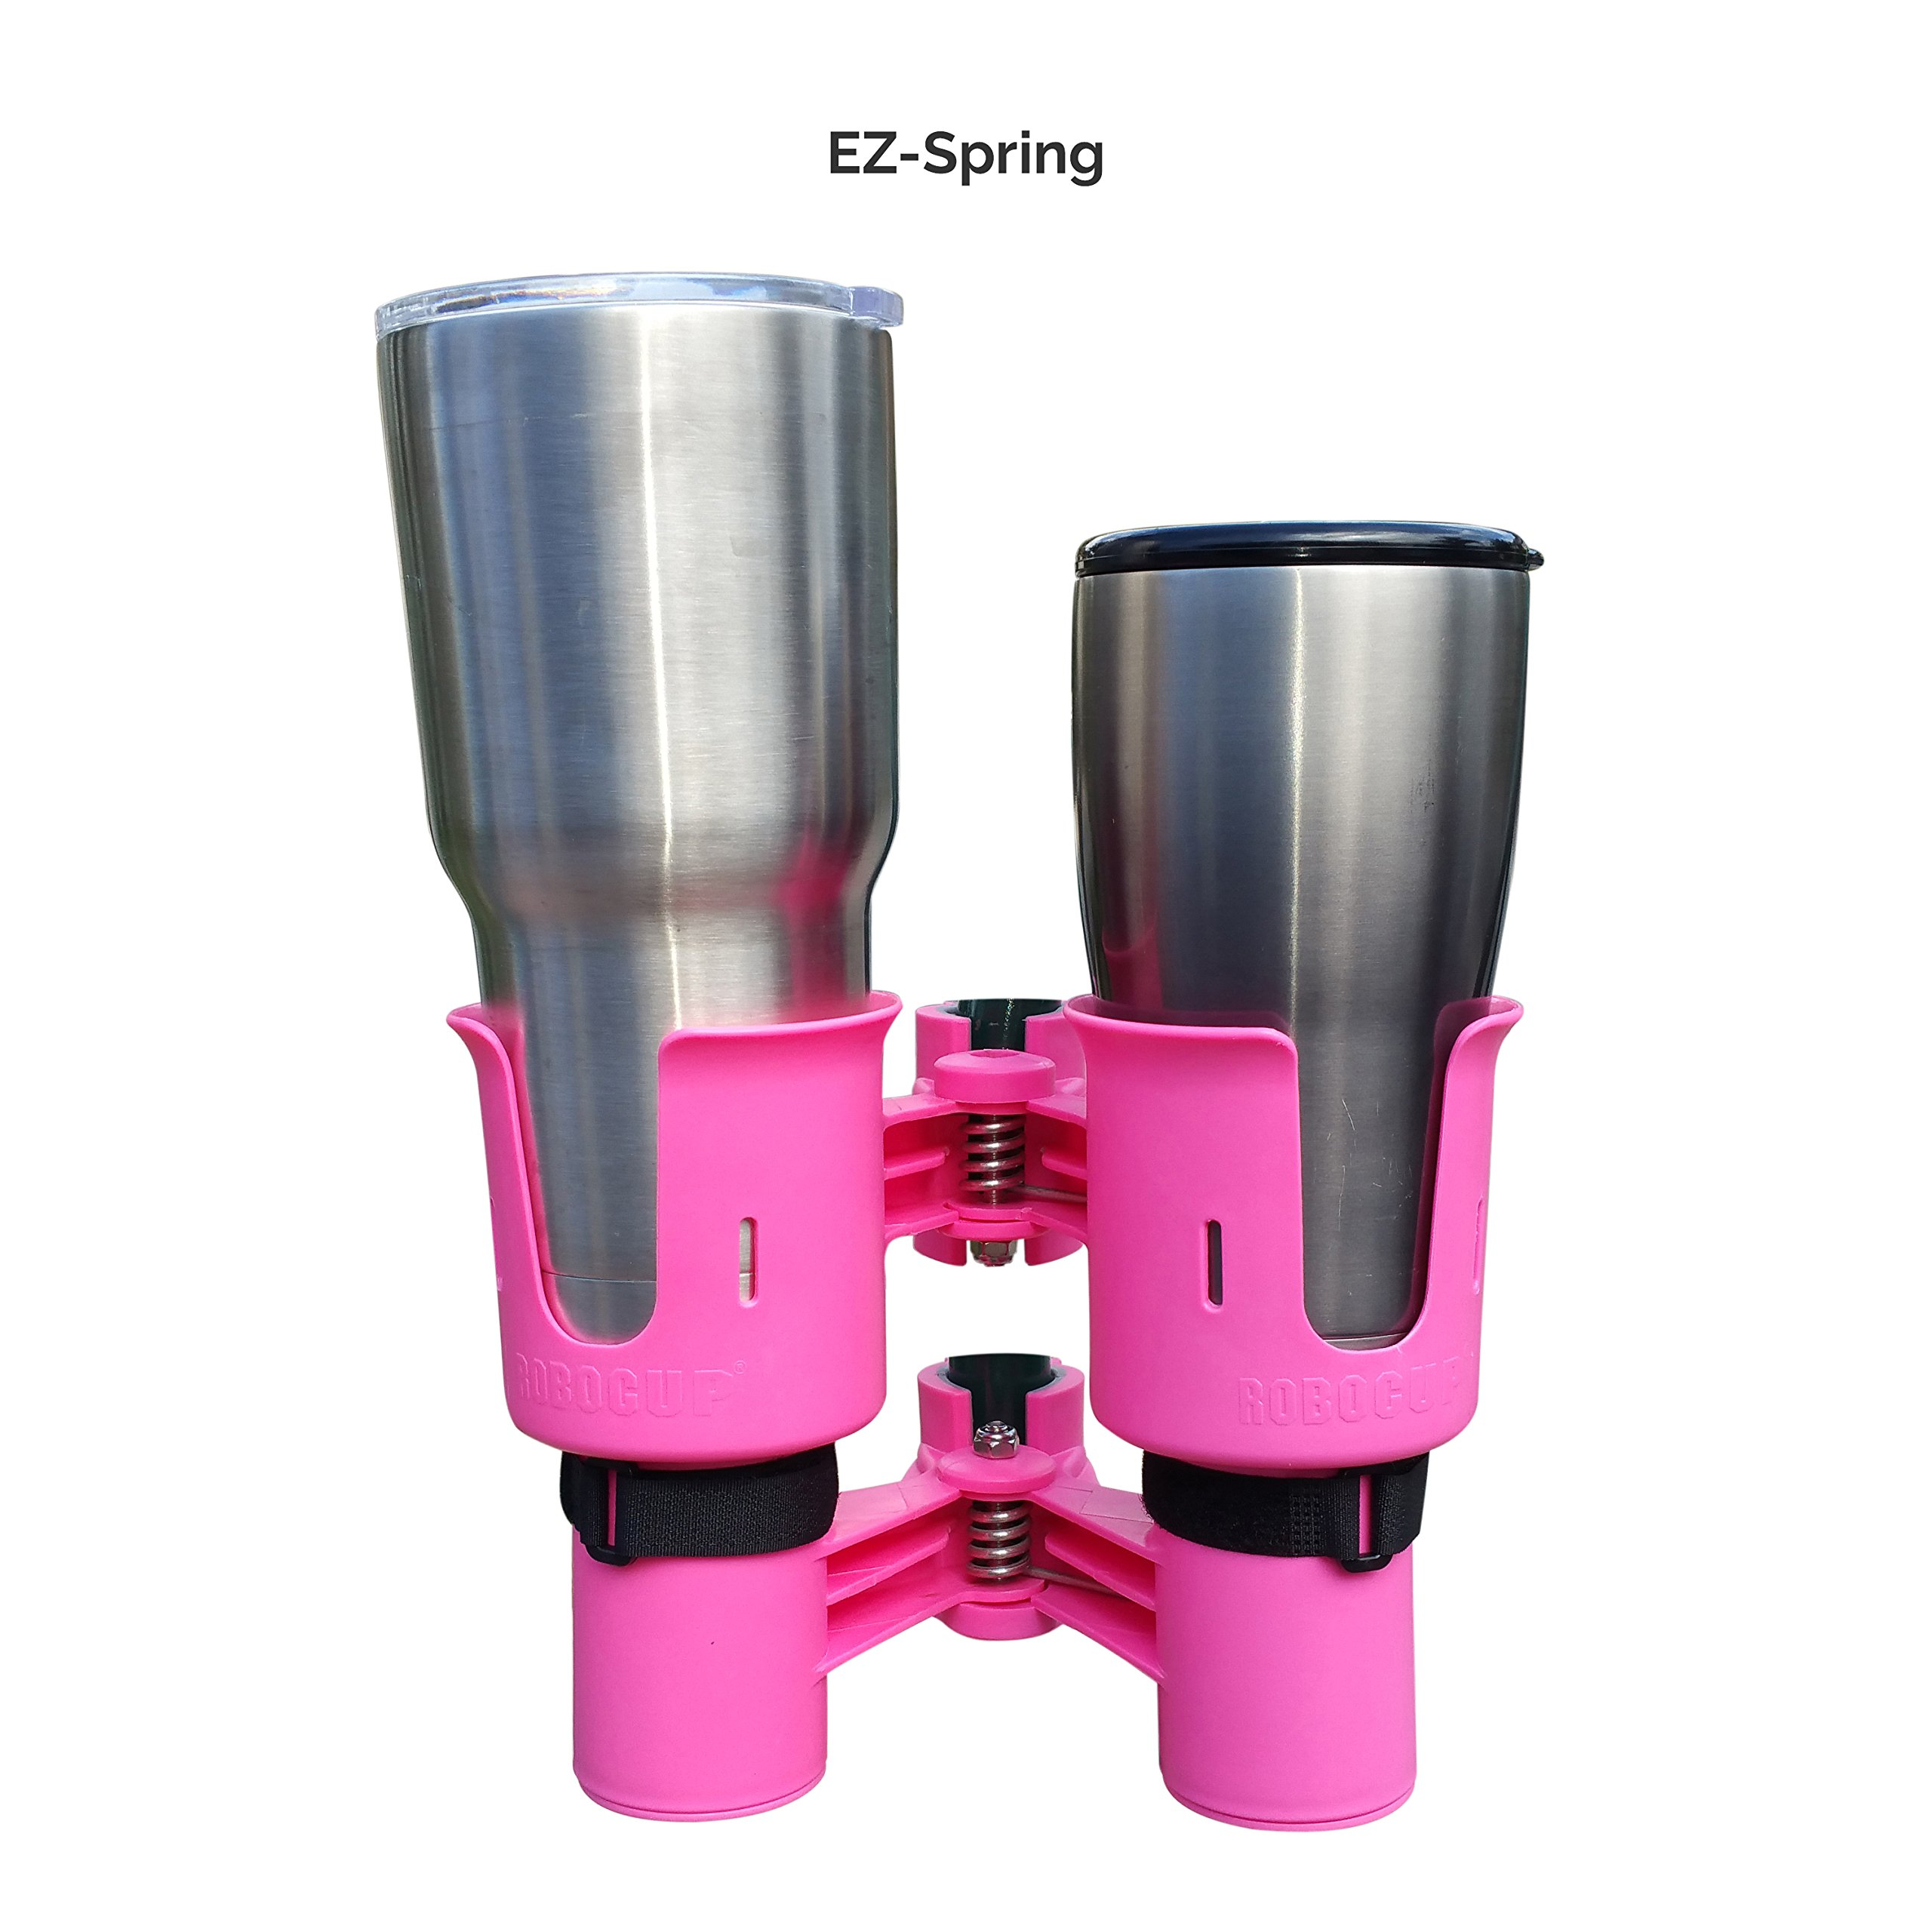 Best cup holder inserts for car   Amazon.com Cup Holder Inserts For Golf Carts on marine cup holder inserts, rv cup holder inserts, golf carts steering wheel, auto cup holder inserts,